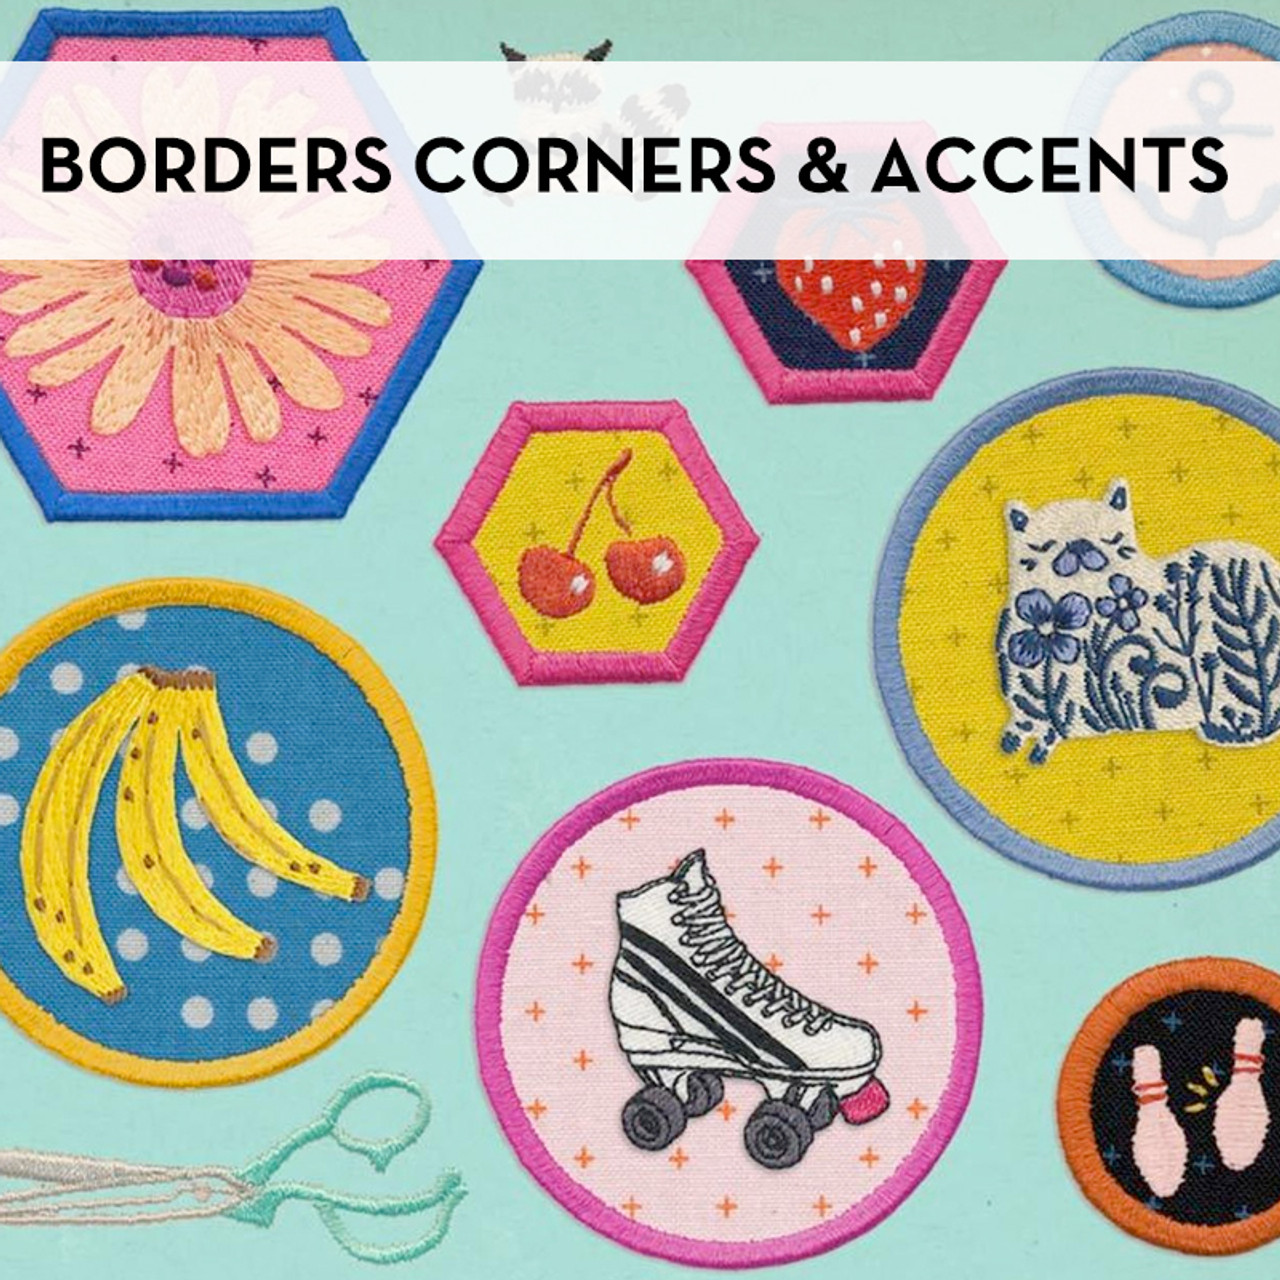 Borders Corners & Accents